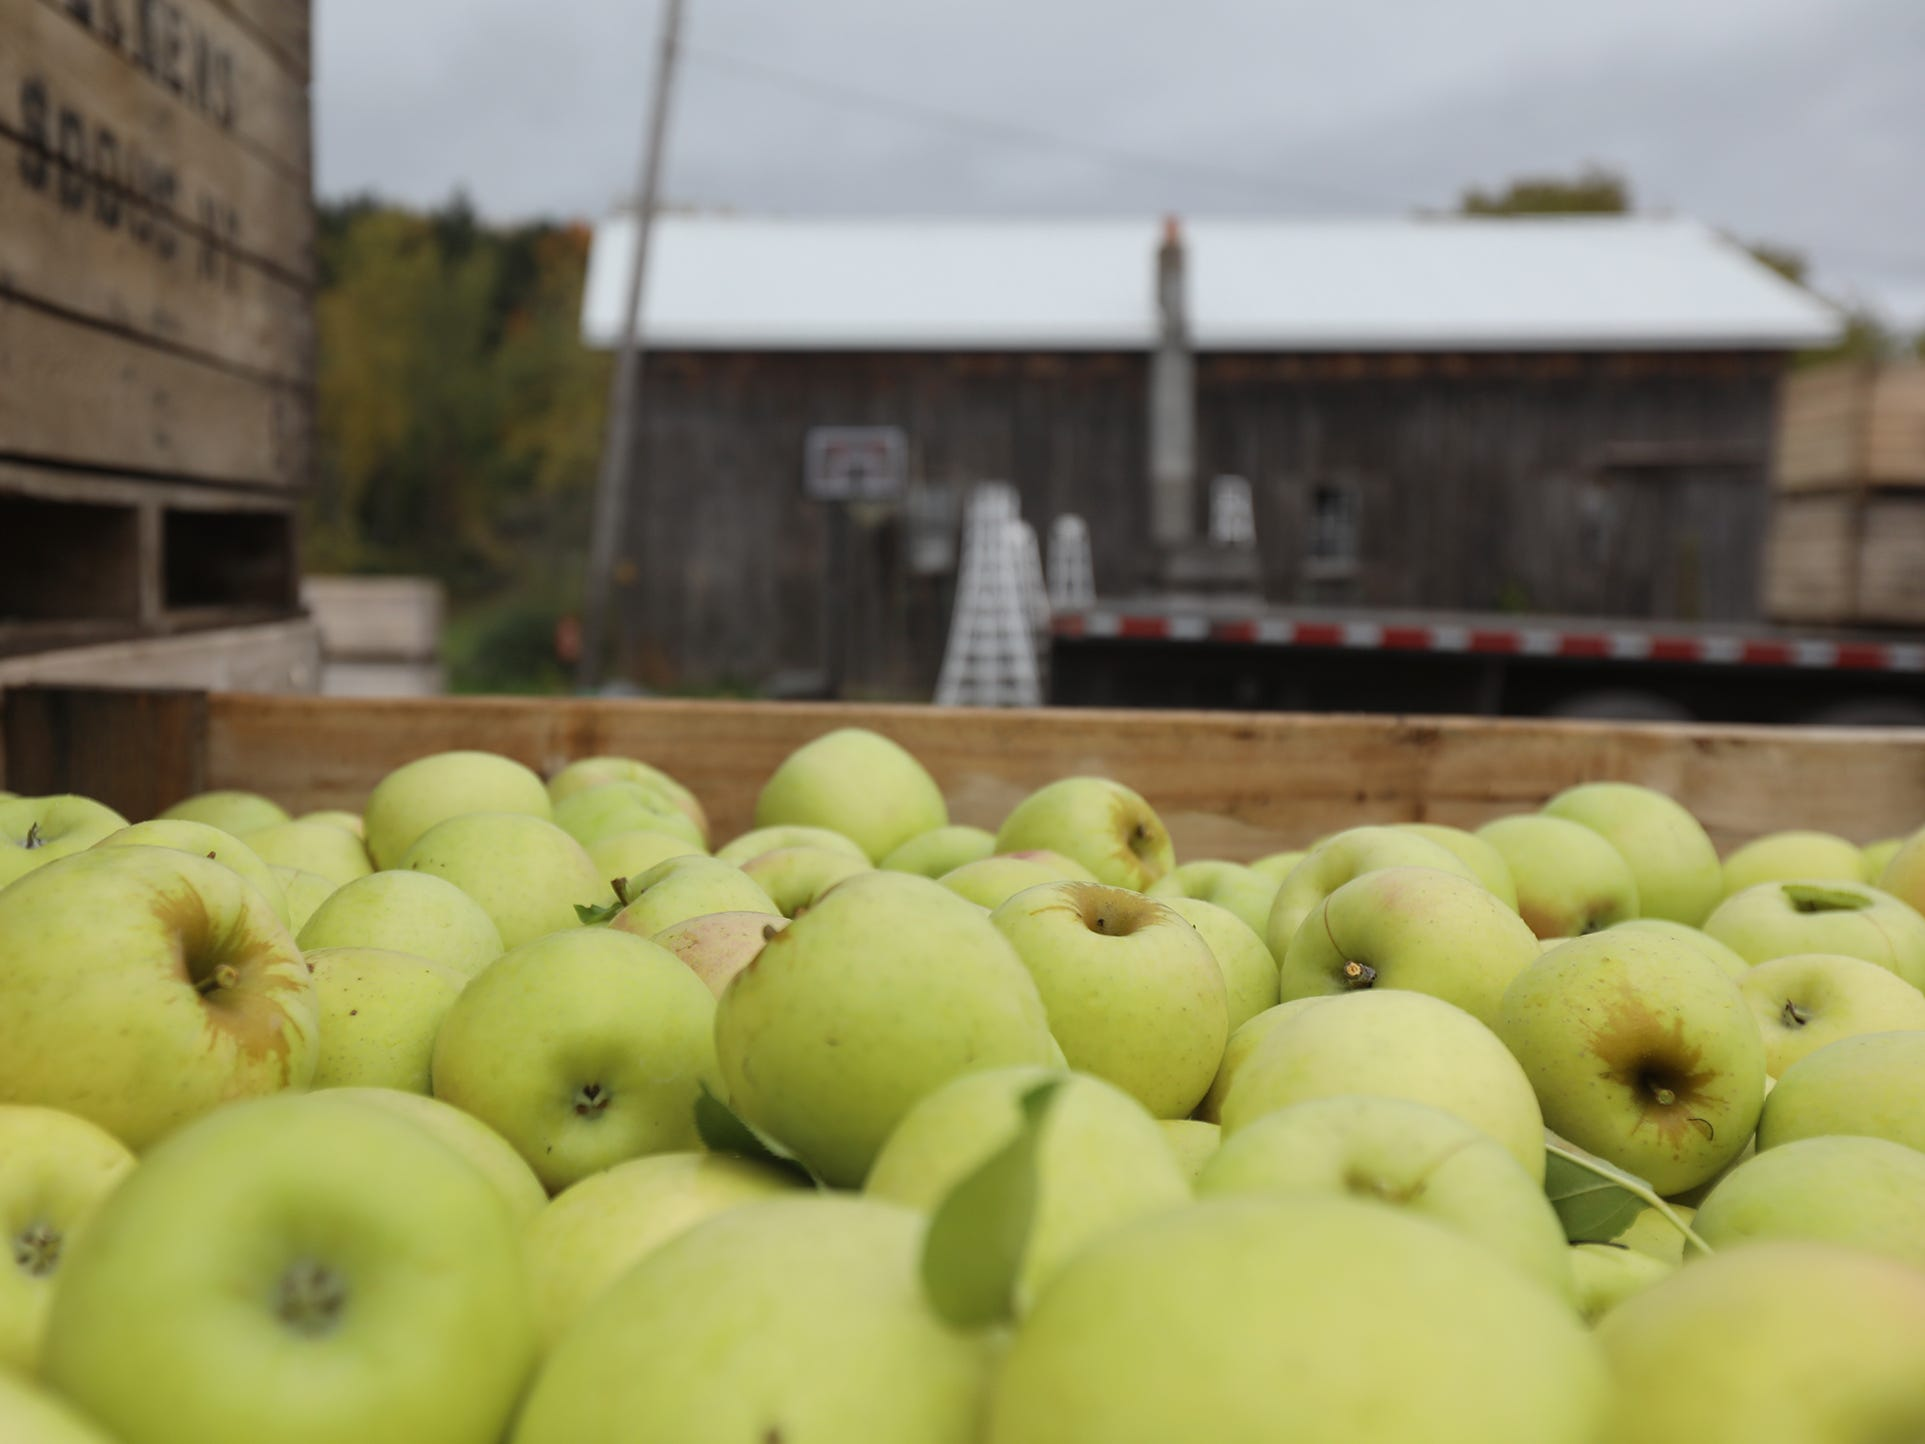 Apples in crates at GMB Beckens Farms LLC get loaded onto a truck.